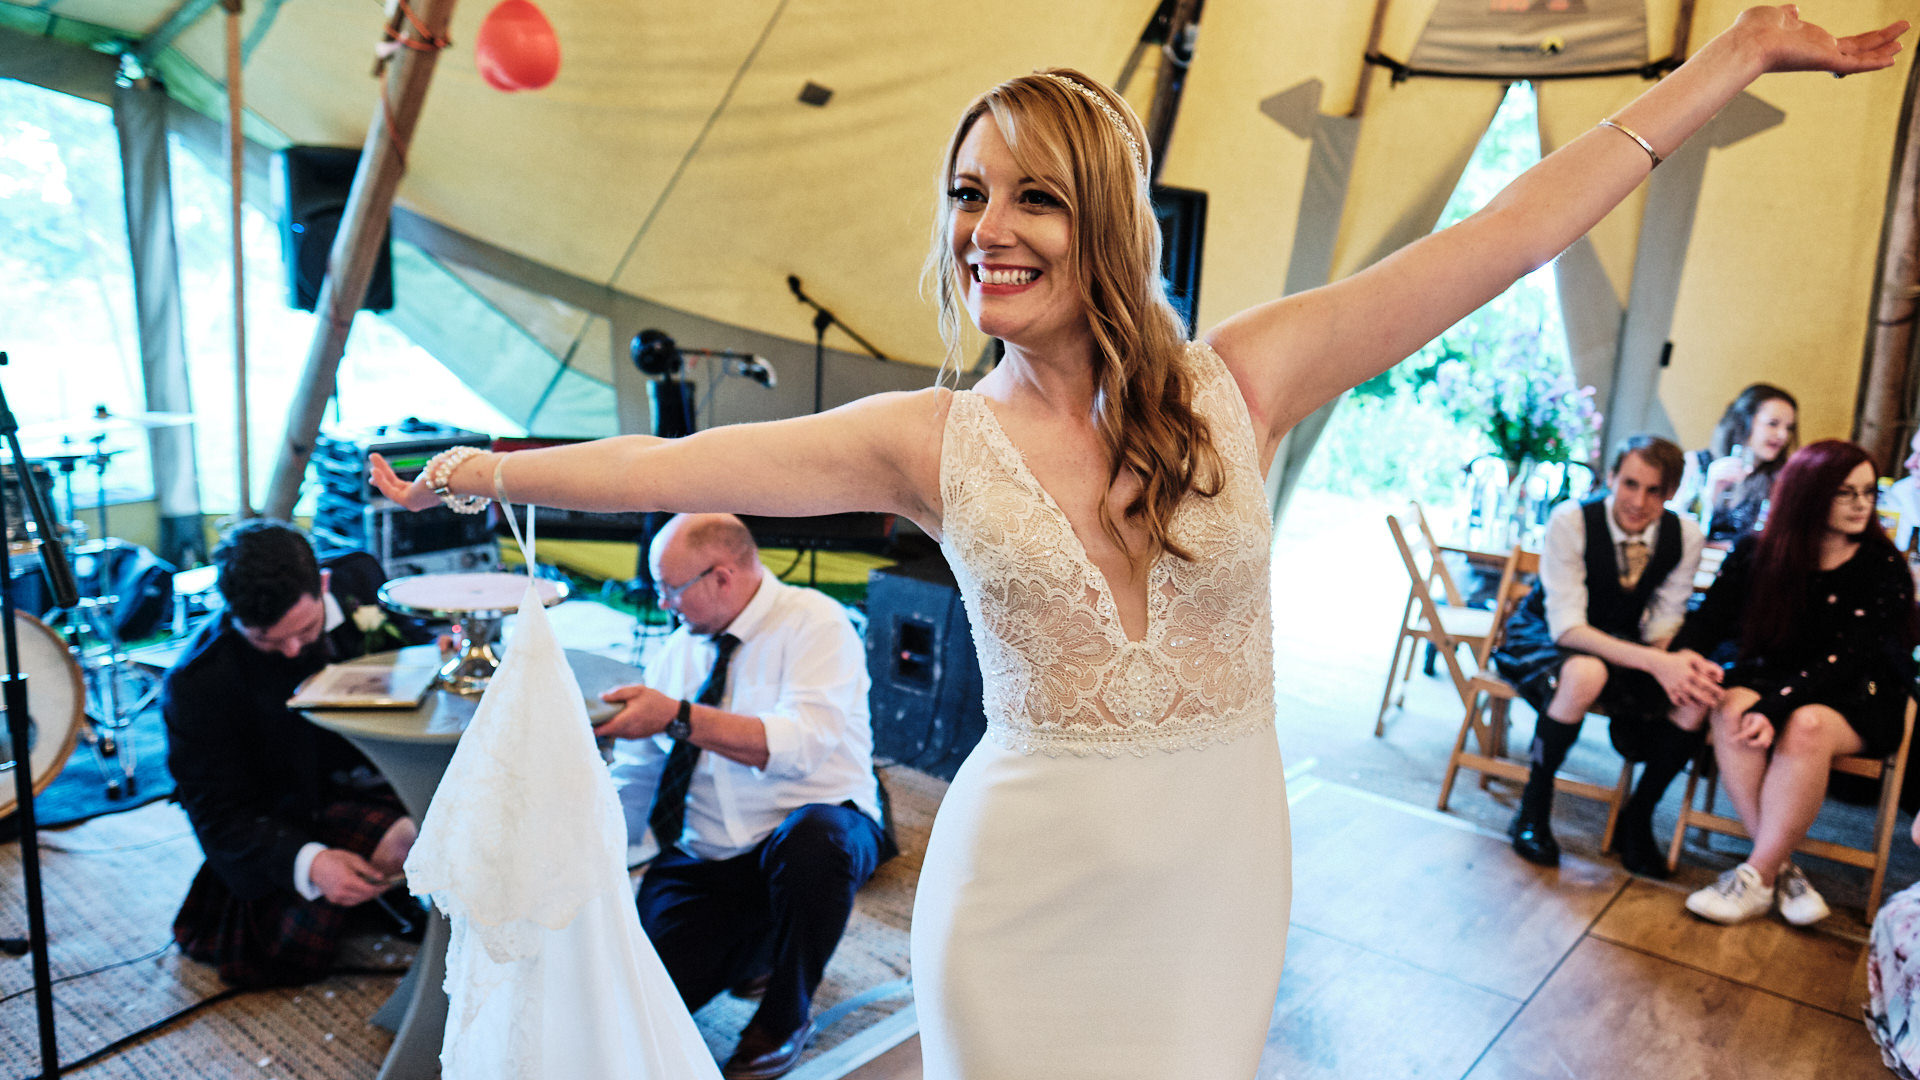 colour photograph of a smiling bride on the dance floor at her wedding reception